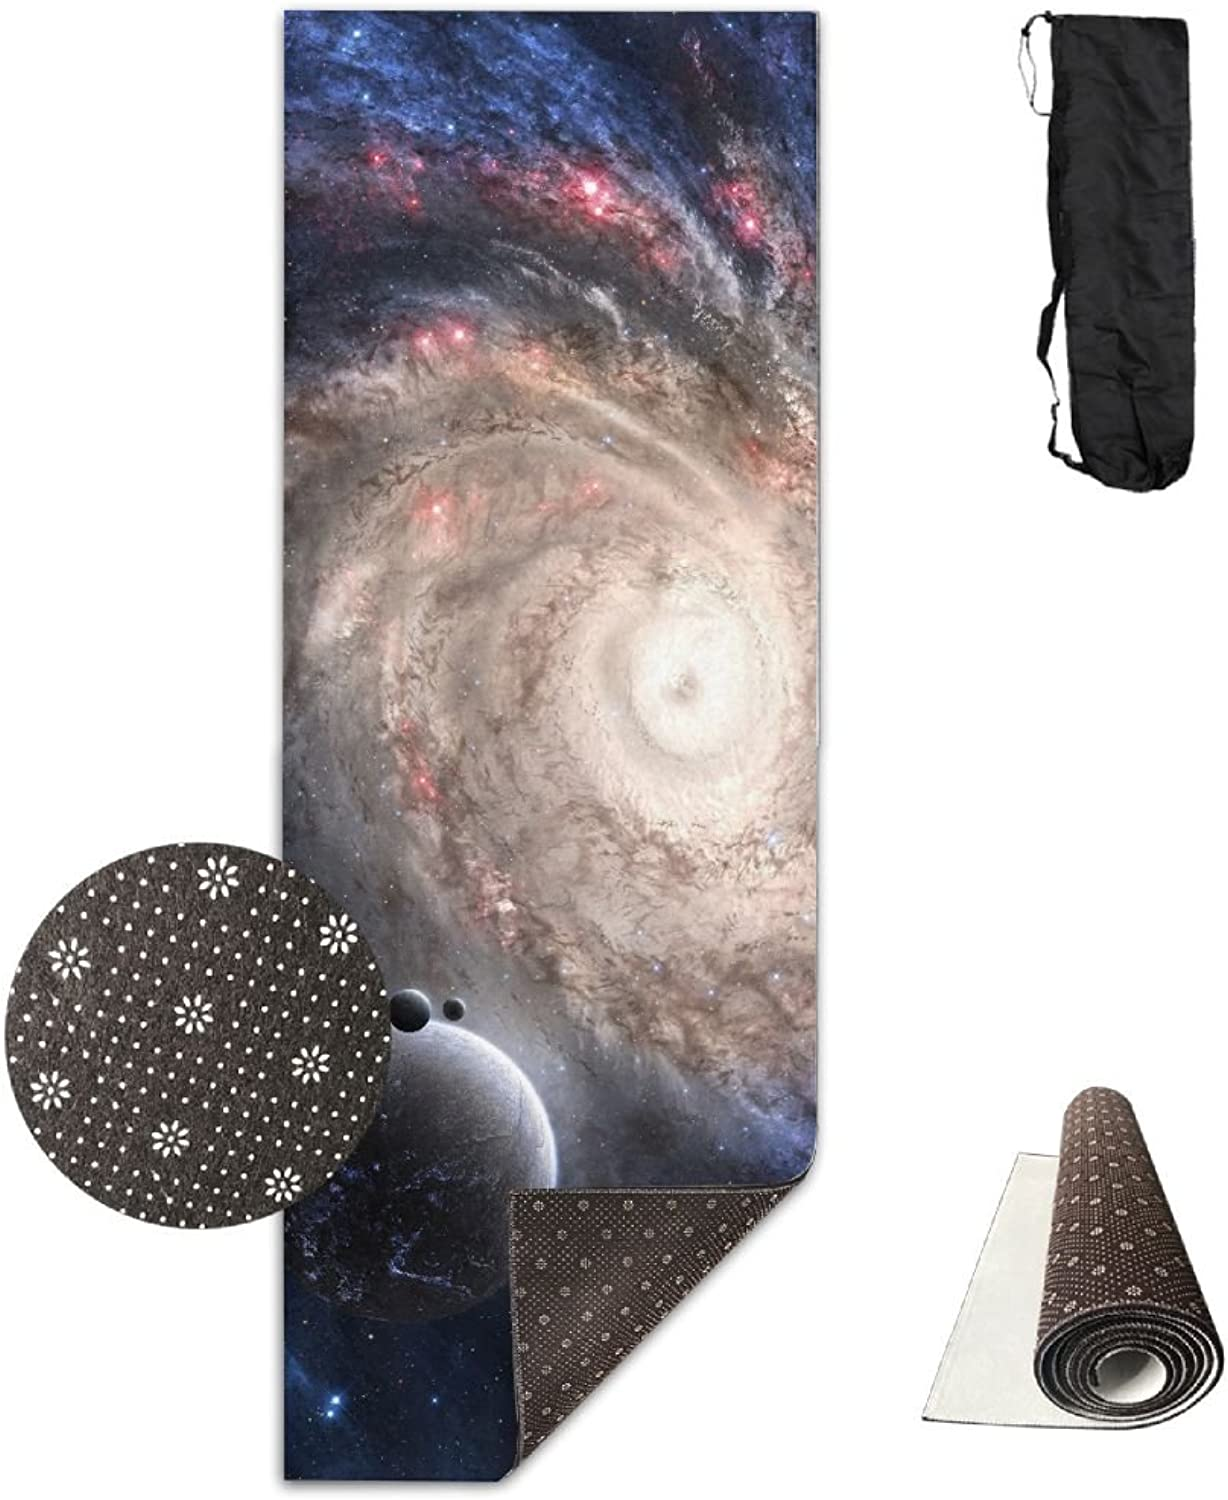 Non Slip Yoga Mat Space Galaxy Planet Premium Printed 24 X 71 inches Great for Exercise Pilates Gymnastics Carrying Strap